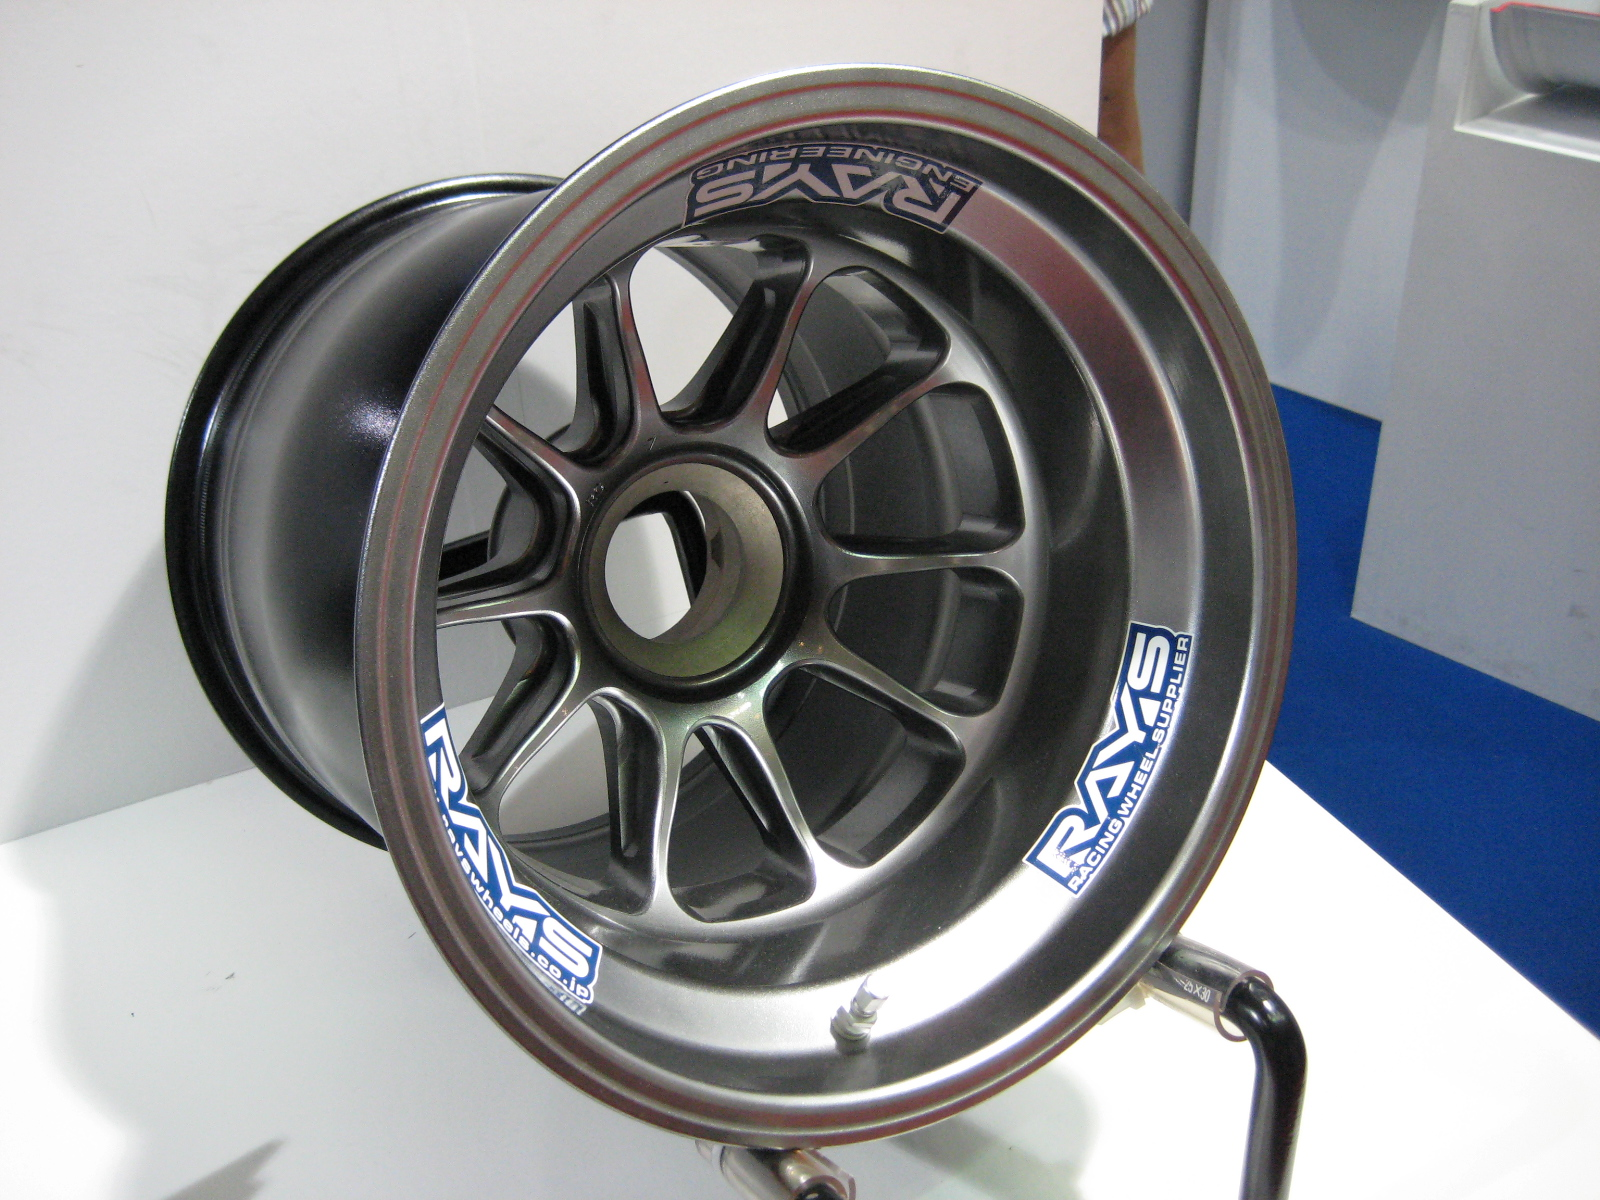 ファイル rays f1 rear wheel jpg wikipedia